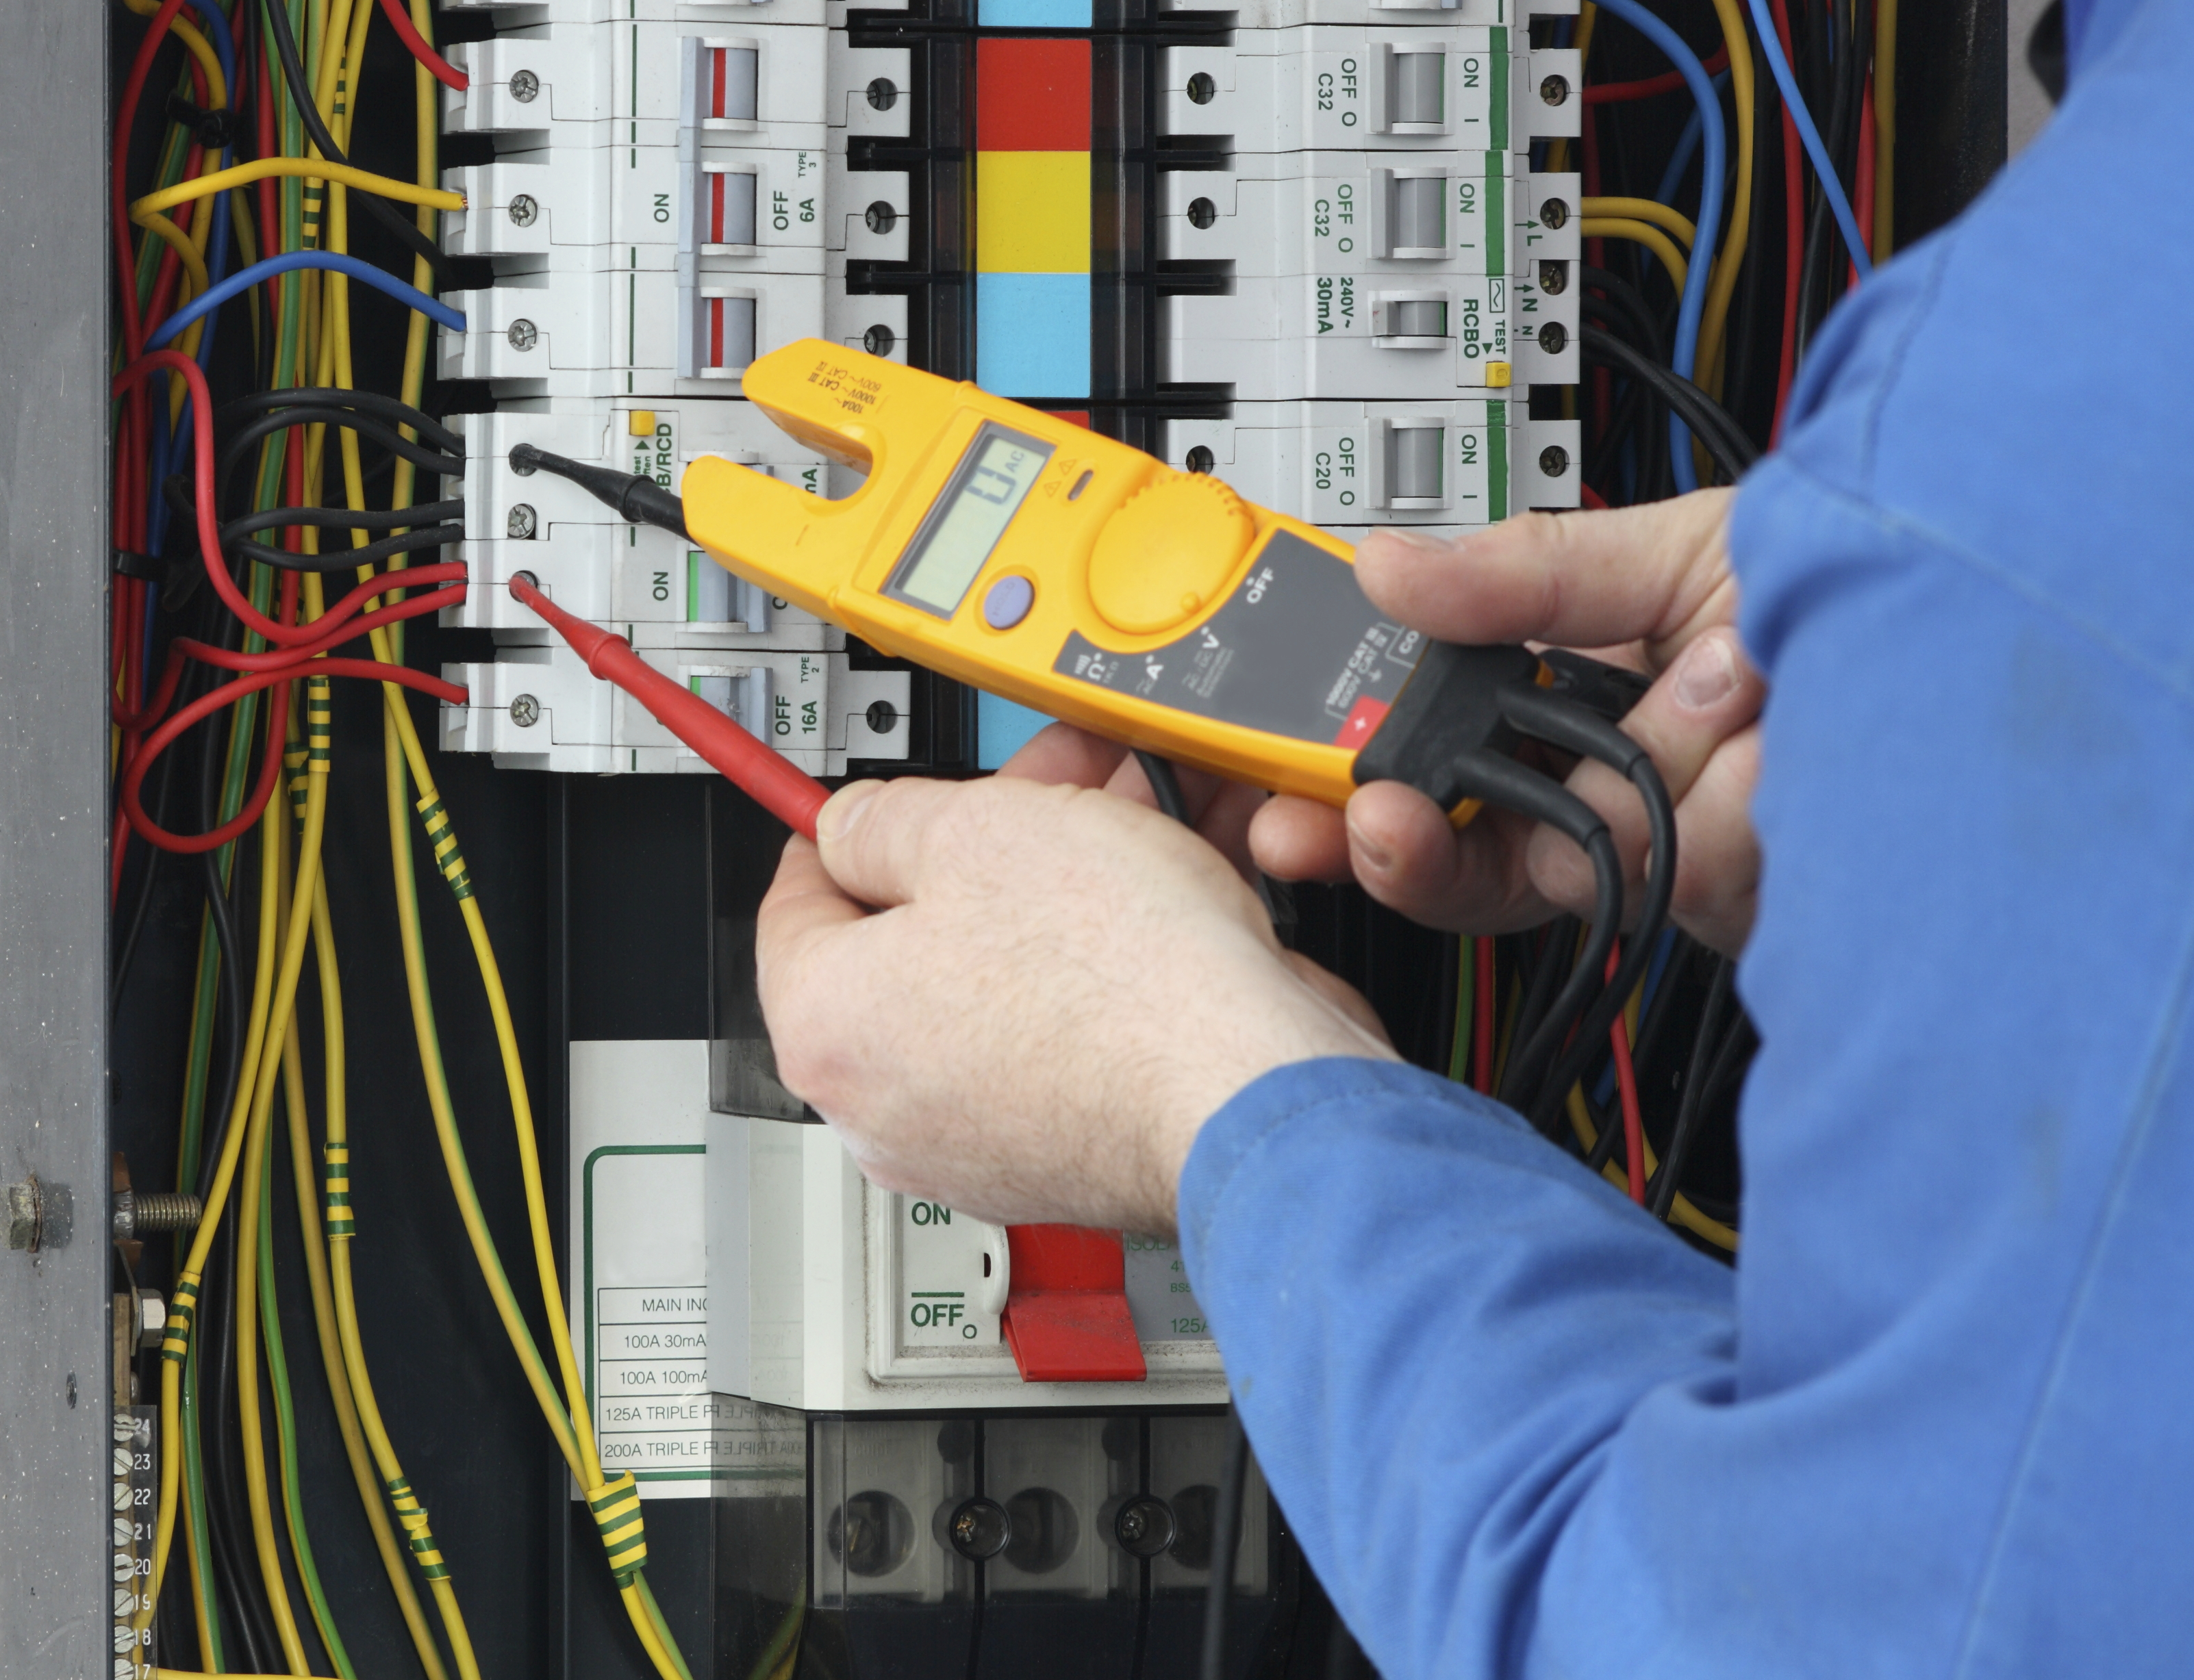 Electrical Wiring Inspections electrical wiring inspections electrical safety inspections excel electrical wiring at crackthecode.co